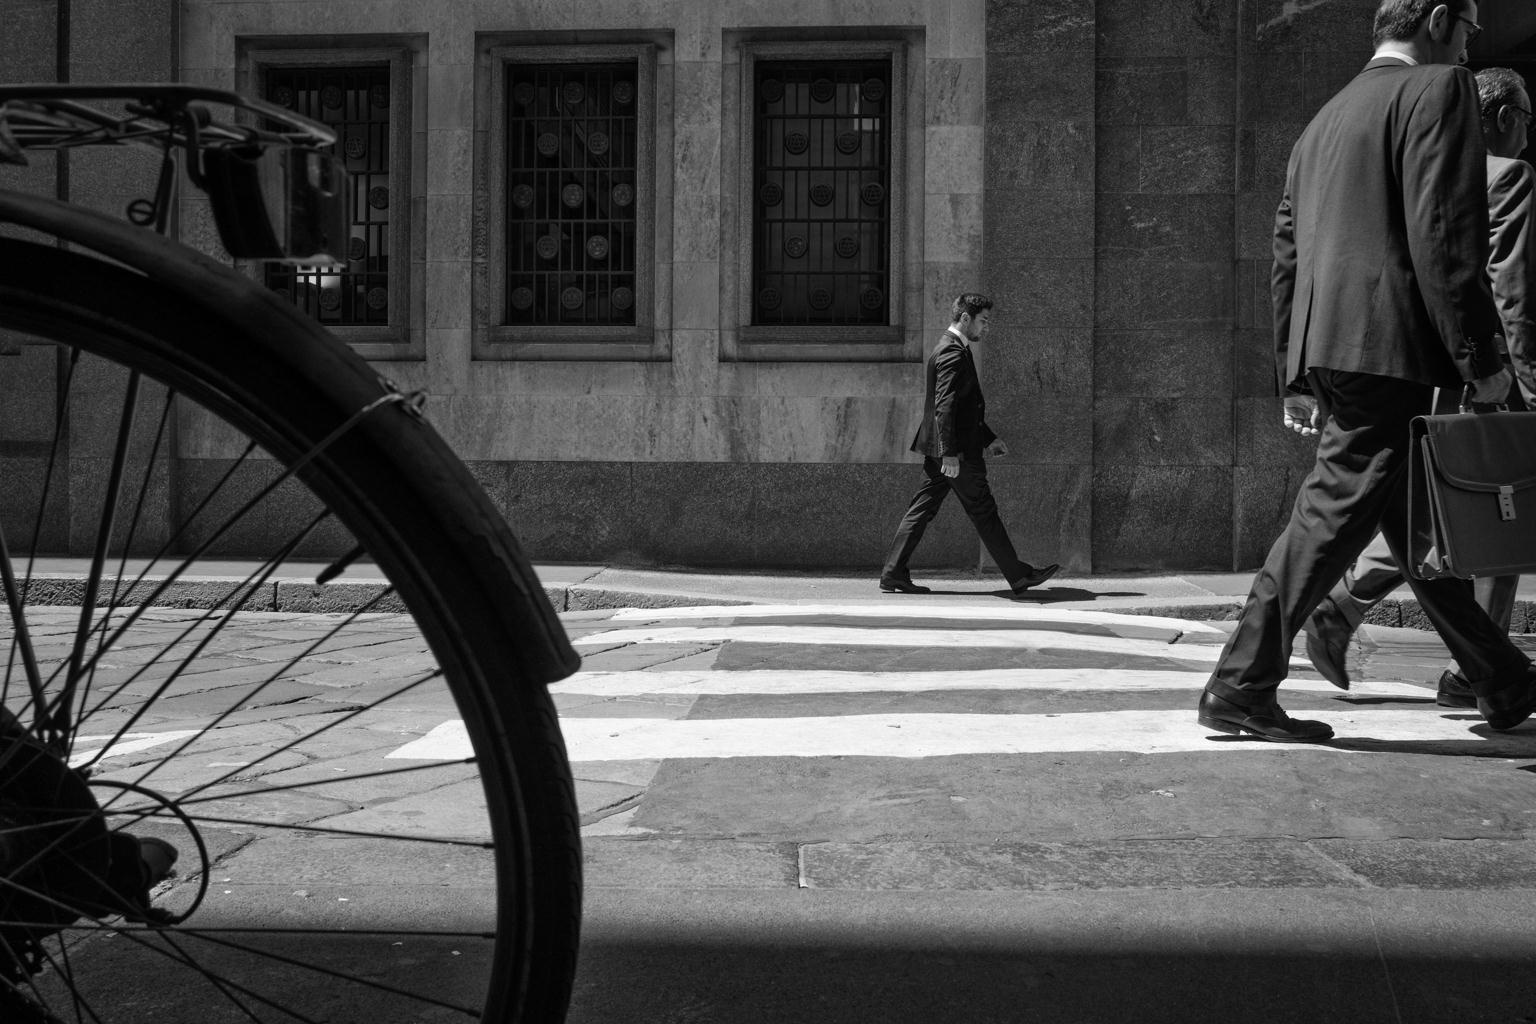 Leica Q Street Photography in Milano